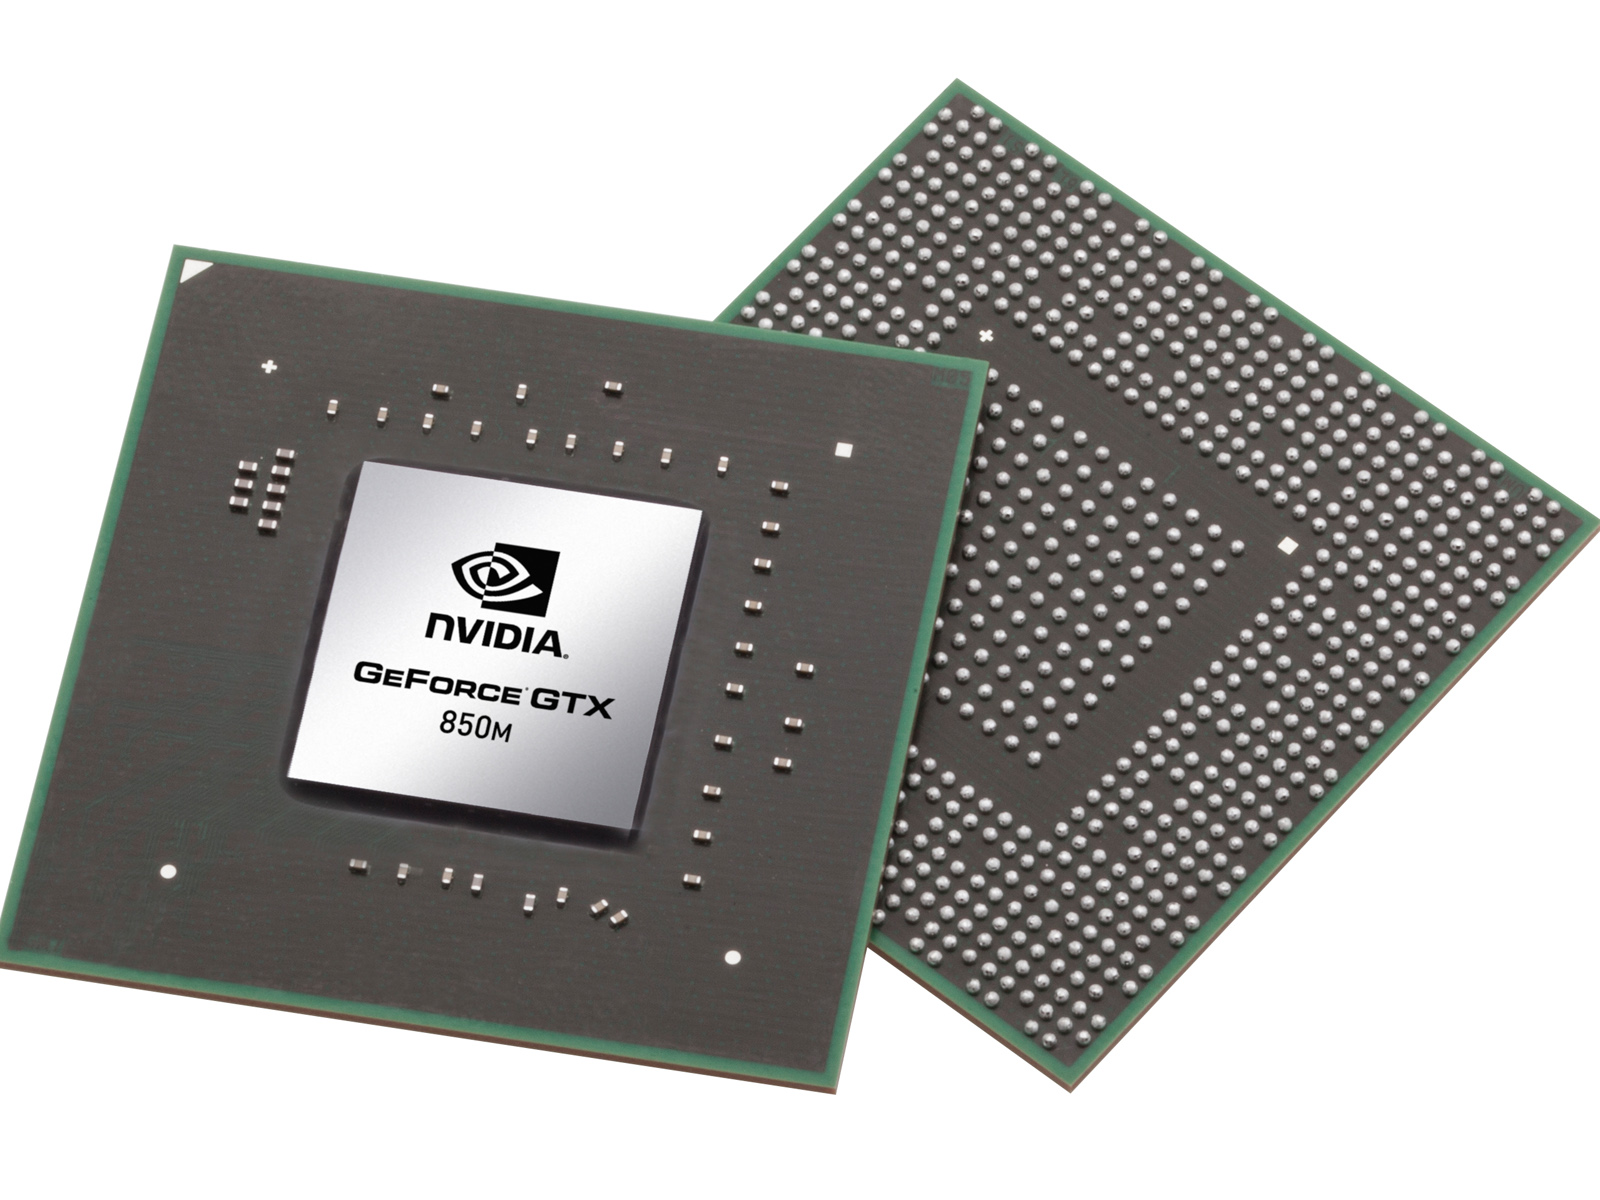 NVIDIA GeForce GTX 850M